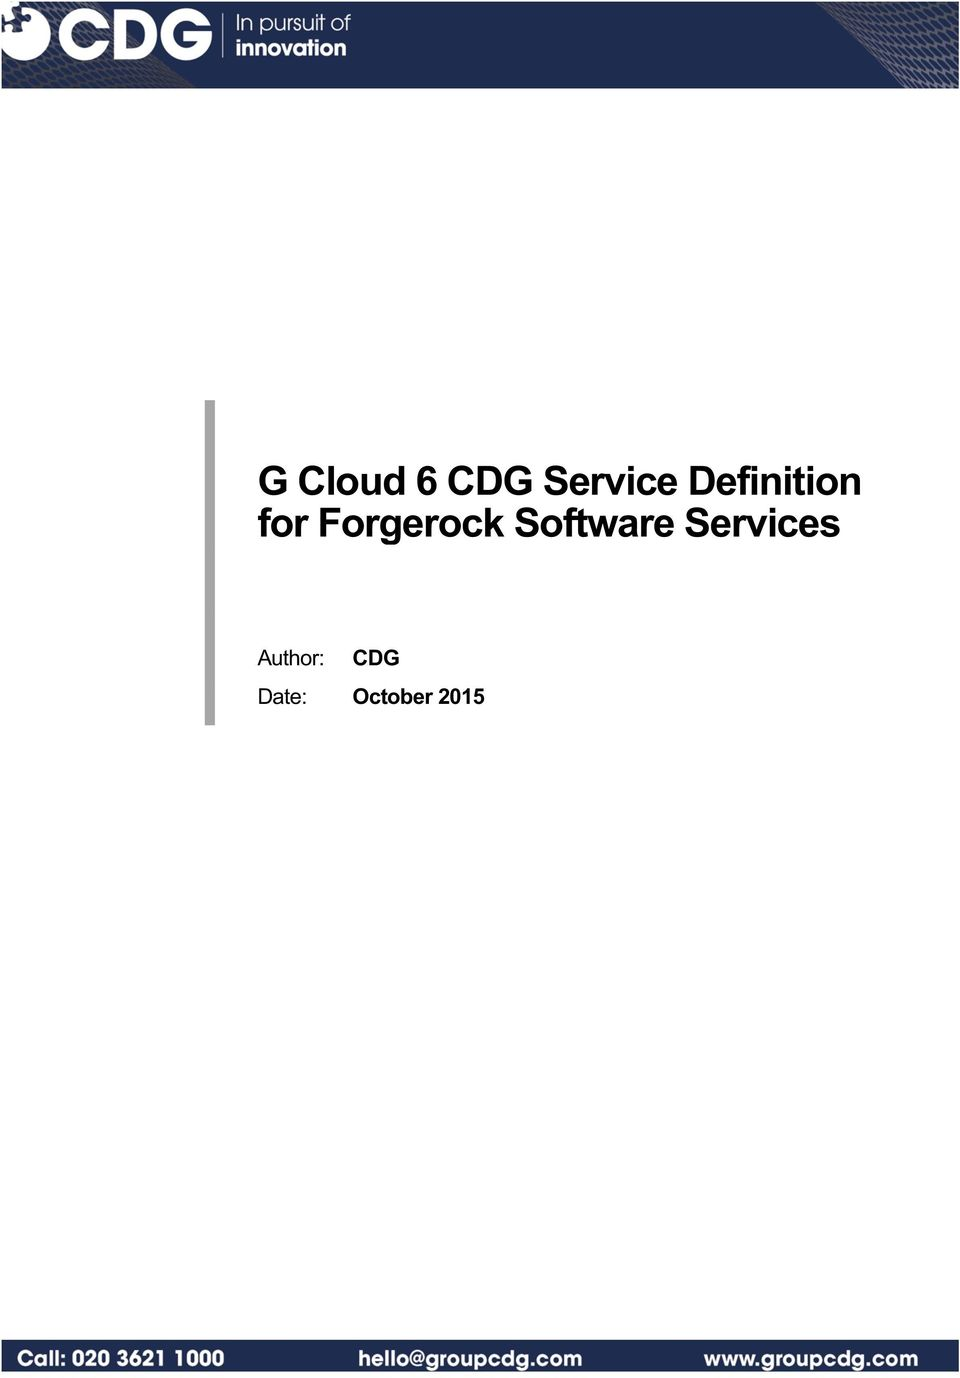 Forgerock Software